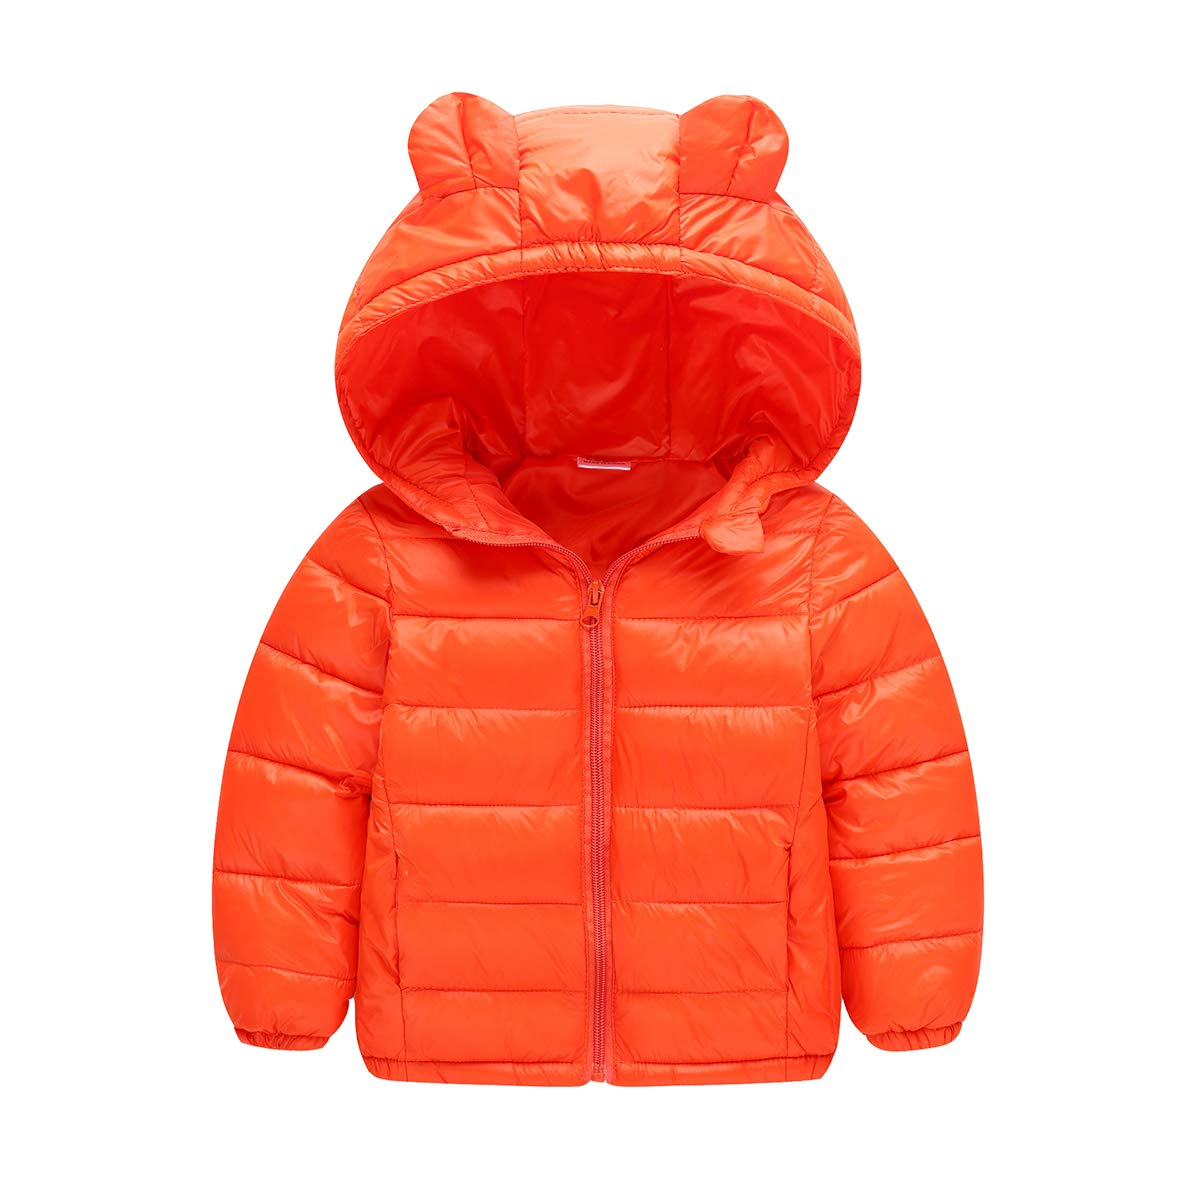 Mornyray Kids Lightweight Warm Puffer Down Jackets Coat Boys Girls Winter Outfit